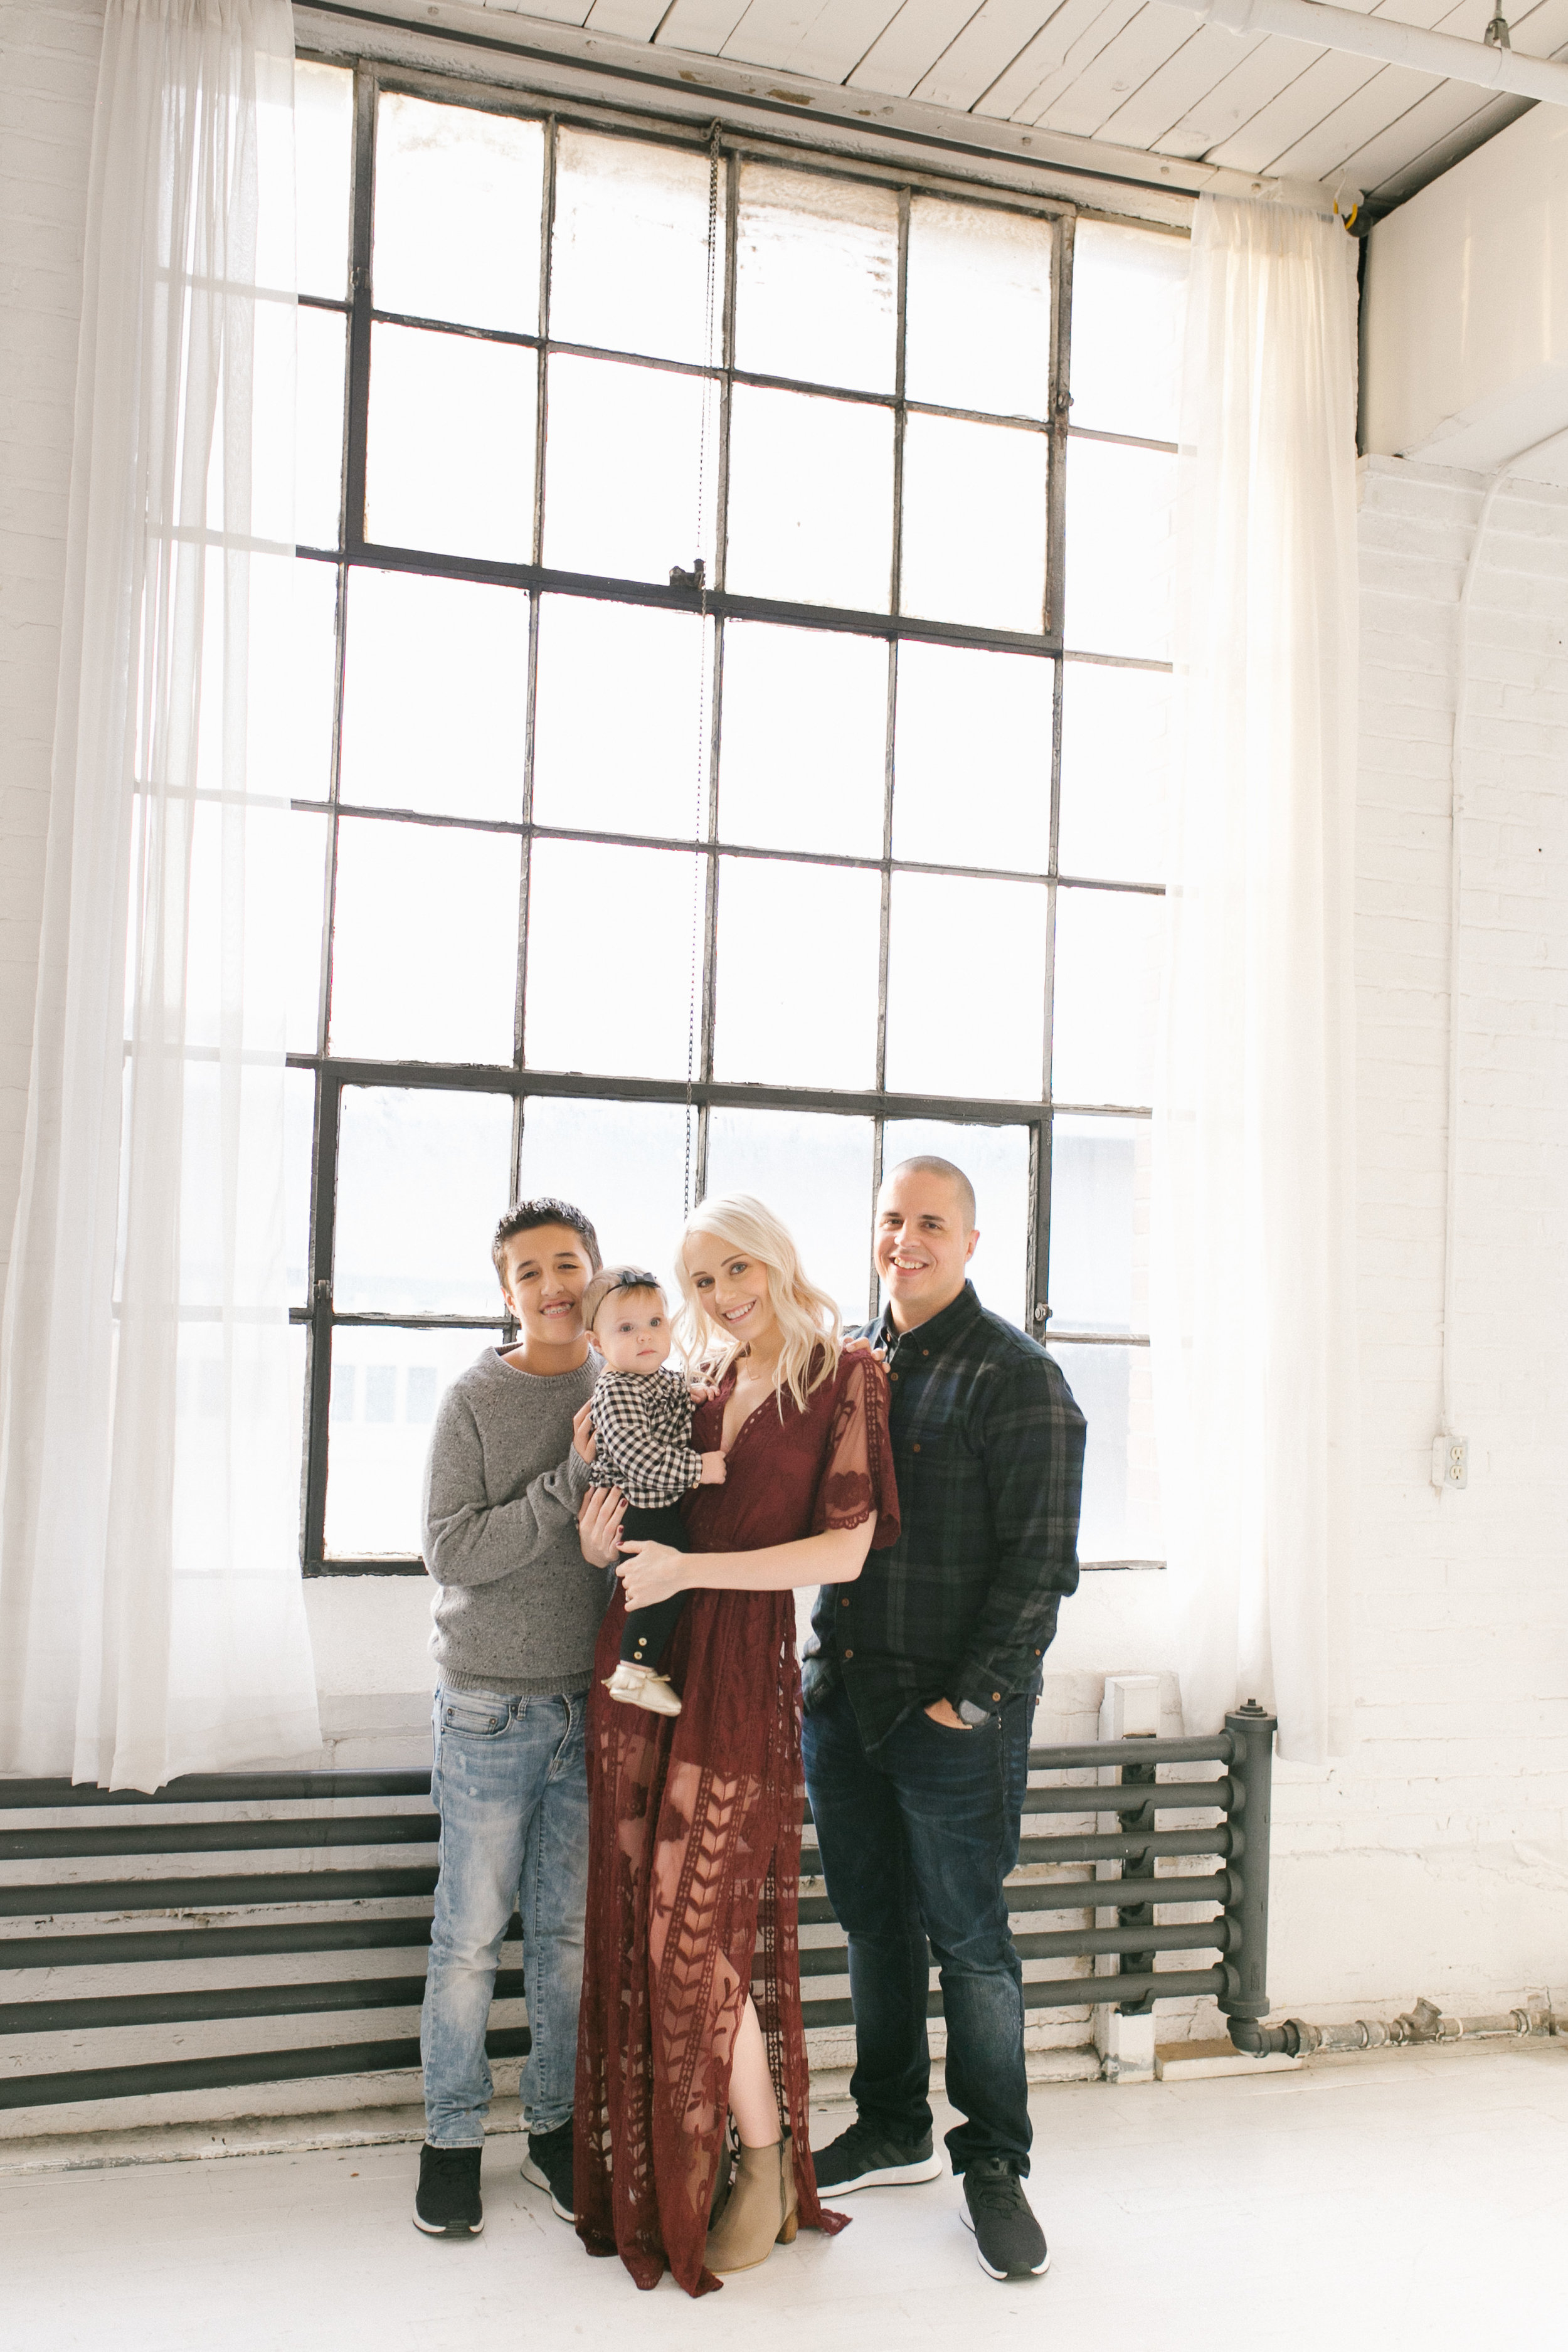 Bemis Building SODO Seattle Studio Family Session Natural Light Lifestyle Photography Session- Chelsea Macor Photography-25.jpg